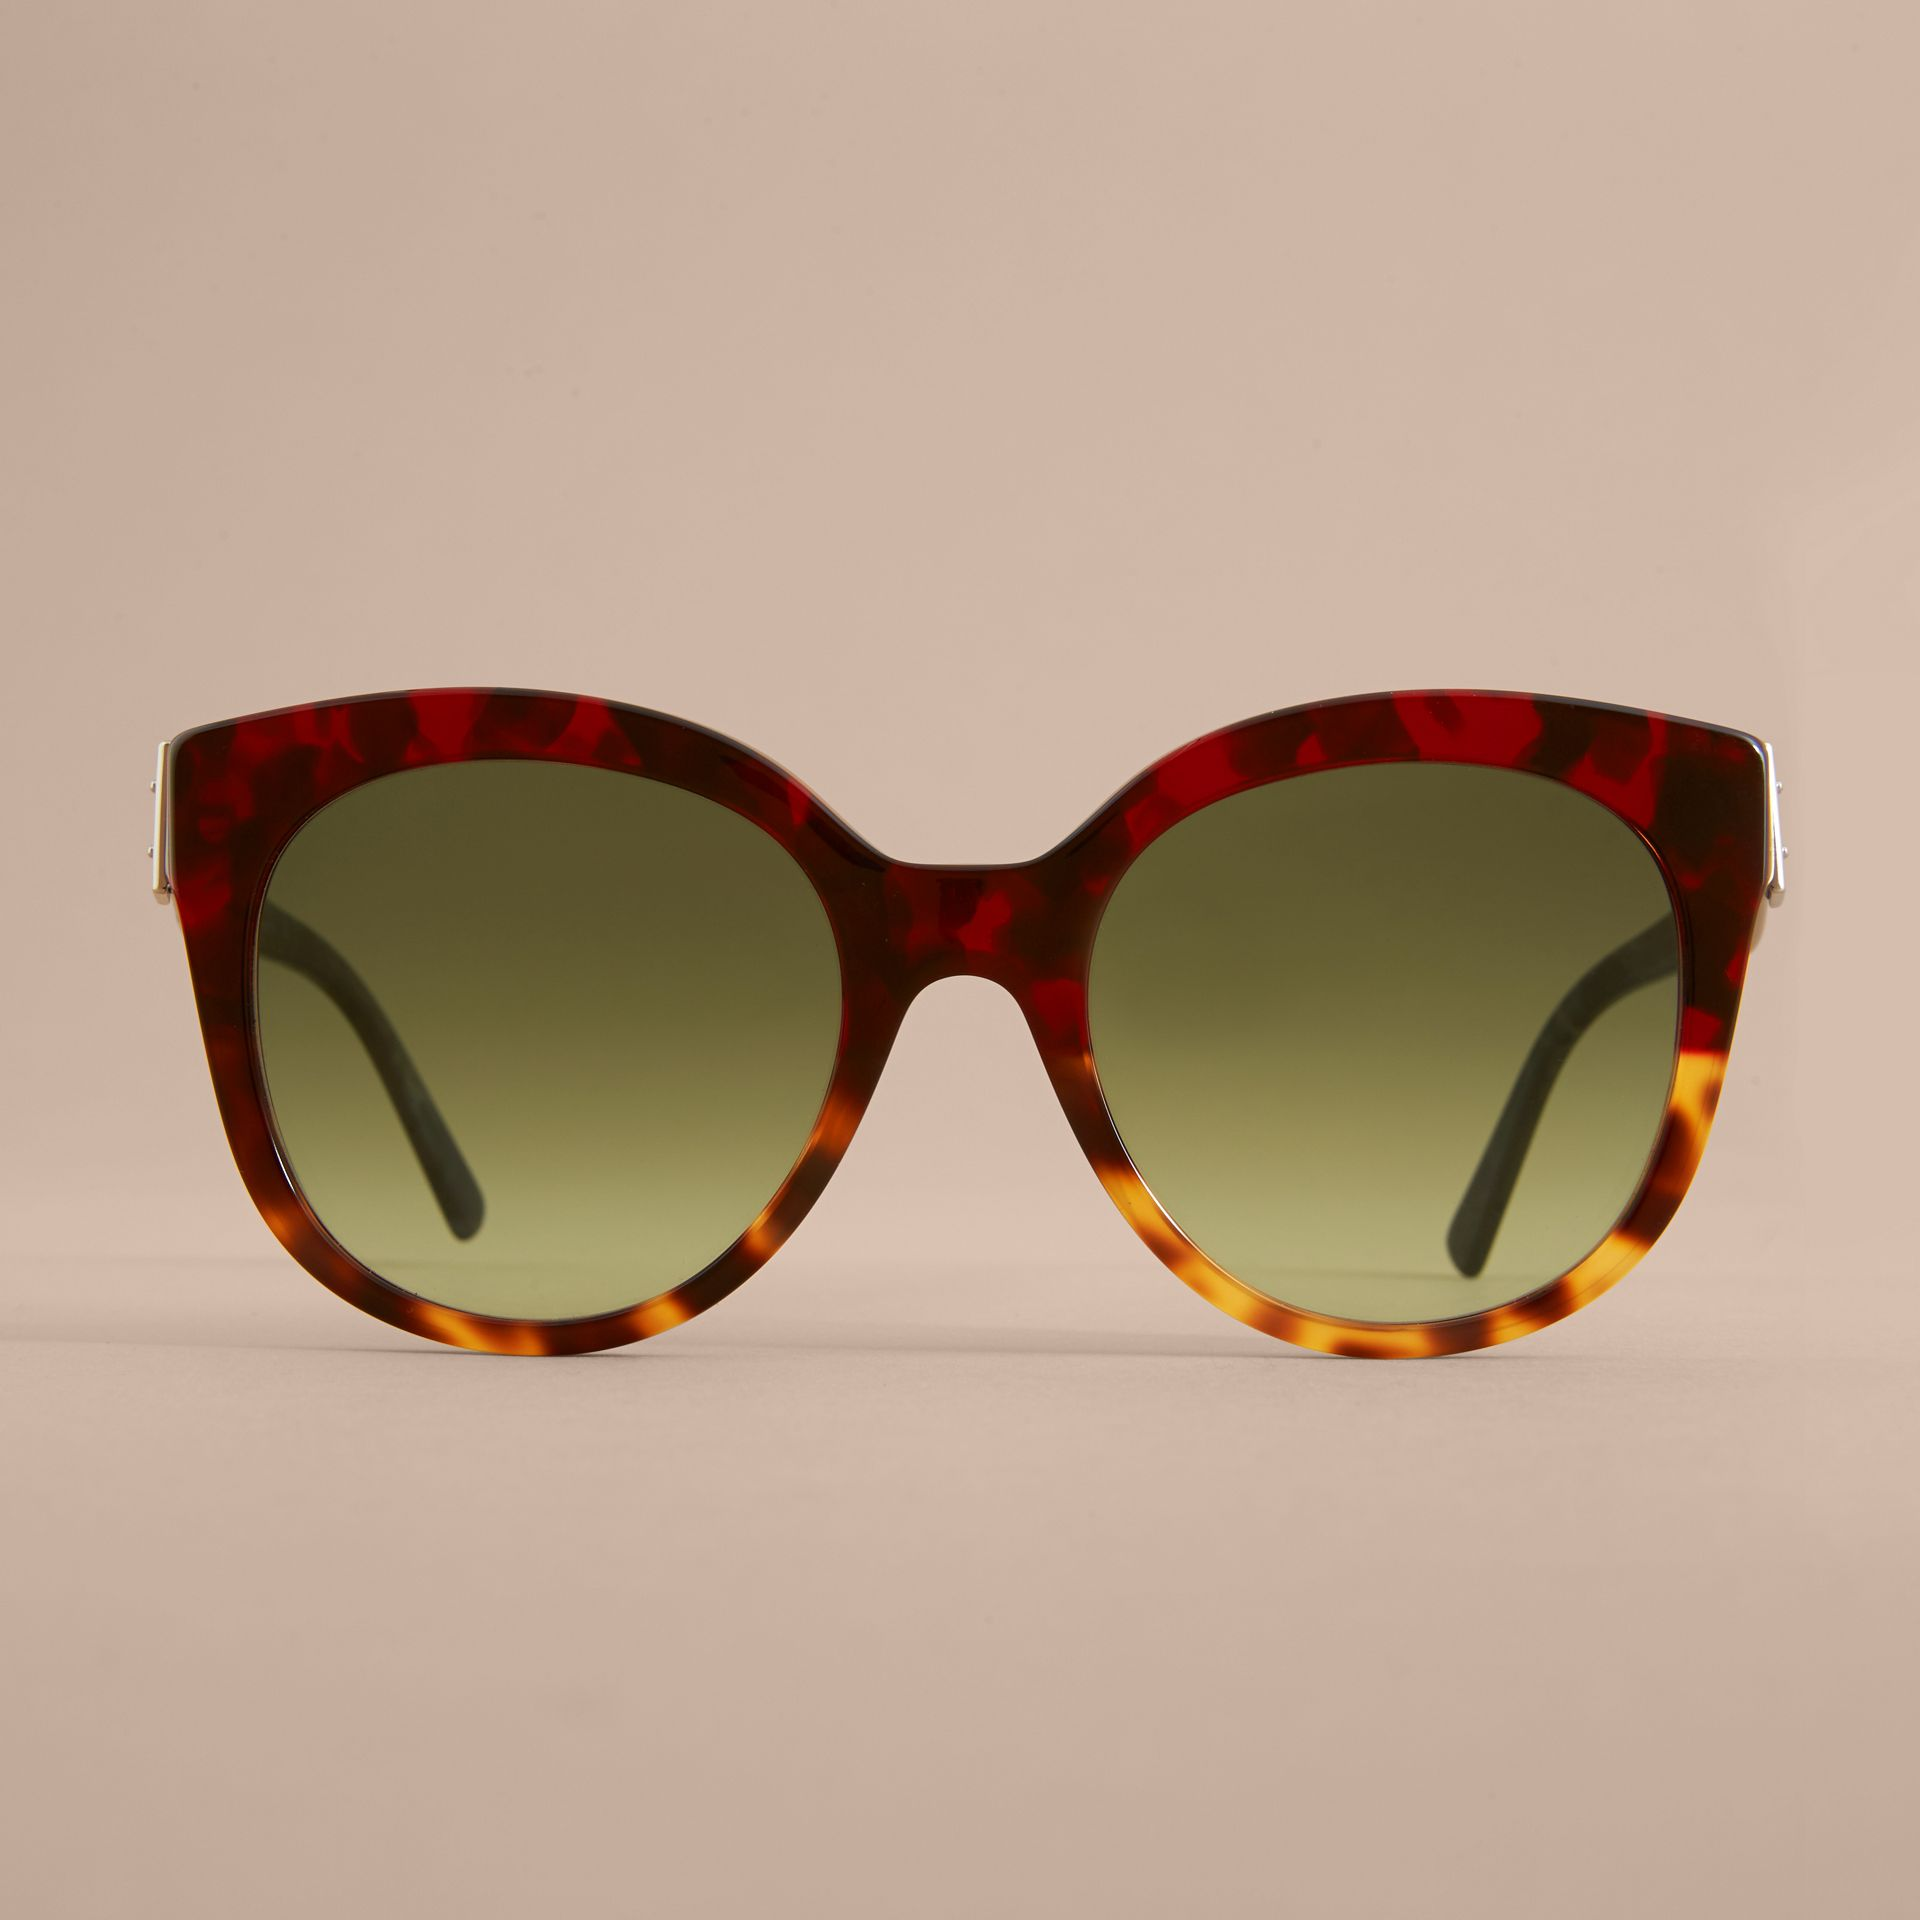 Buckle Detail Cat-eye Frame Sunglasses in Amber Yellow - Women | Burberry Australia - gallery image 3